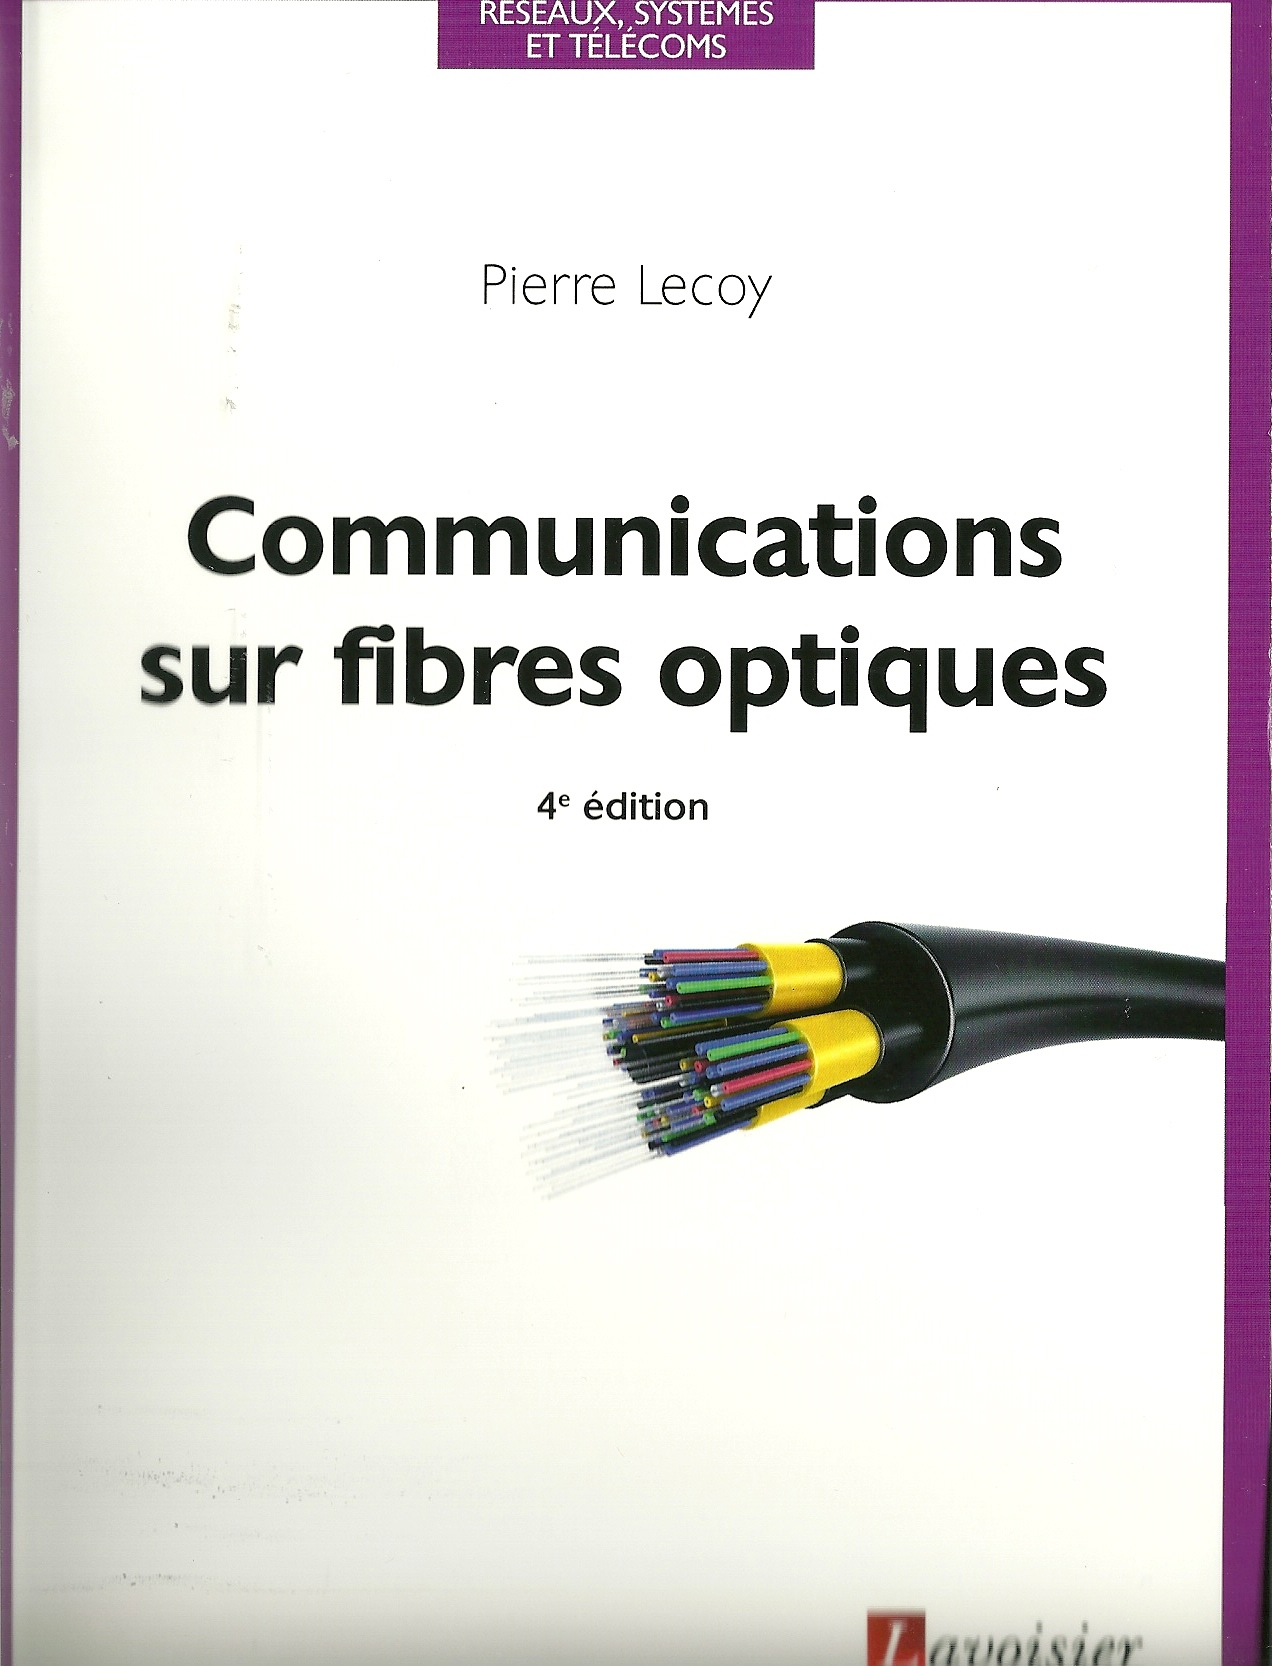 Lecoy communications